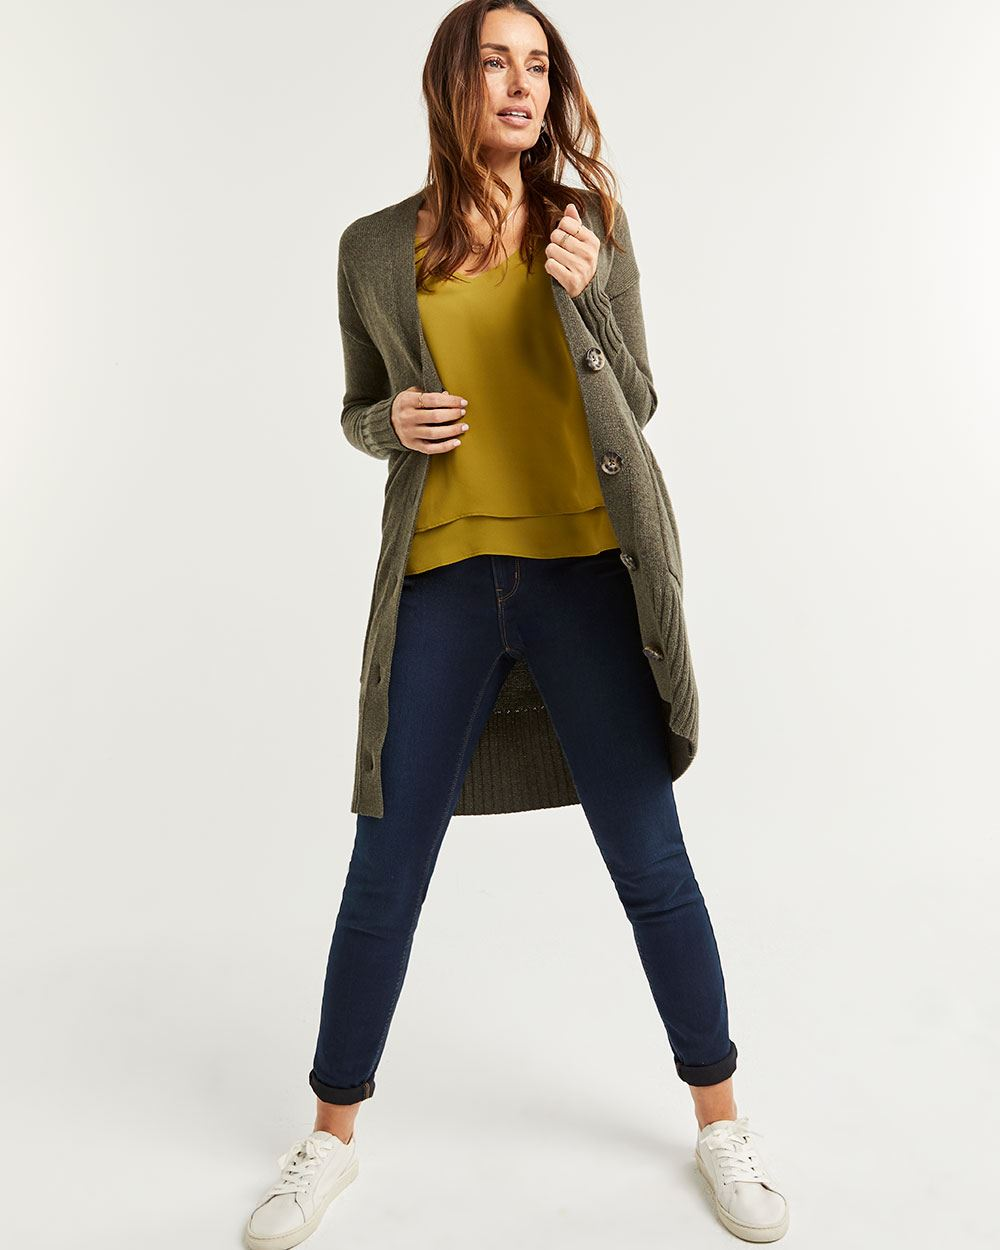 Buttoned Duster Cardigan with Pockets